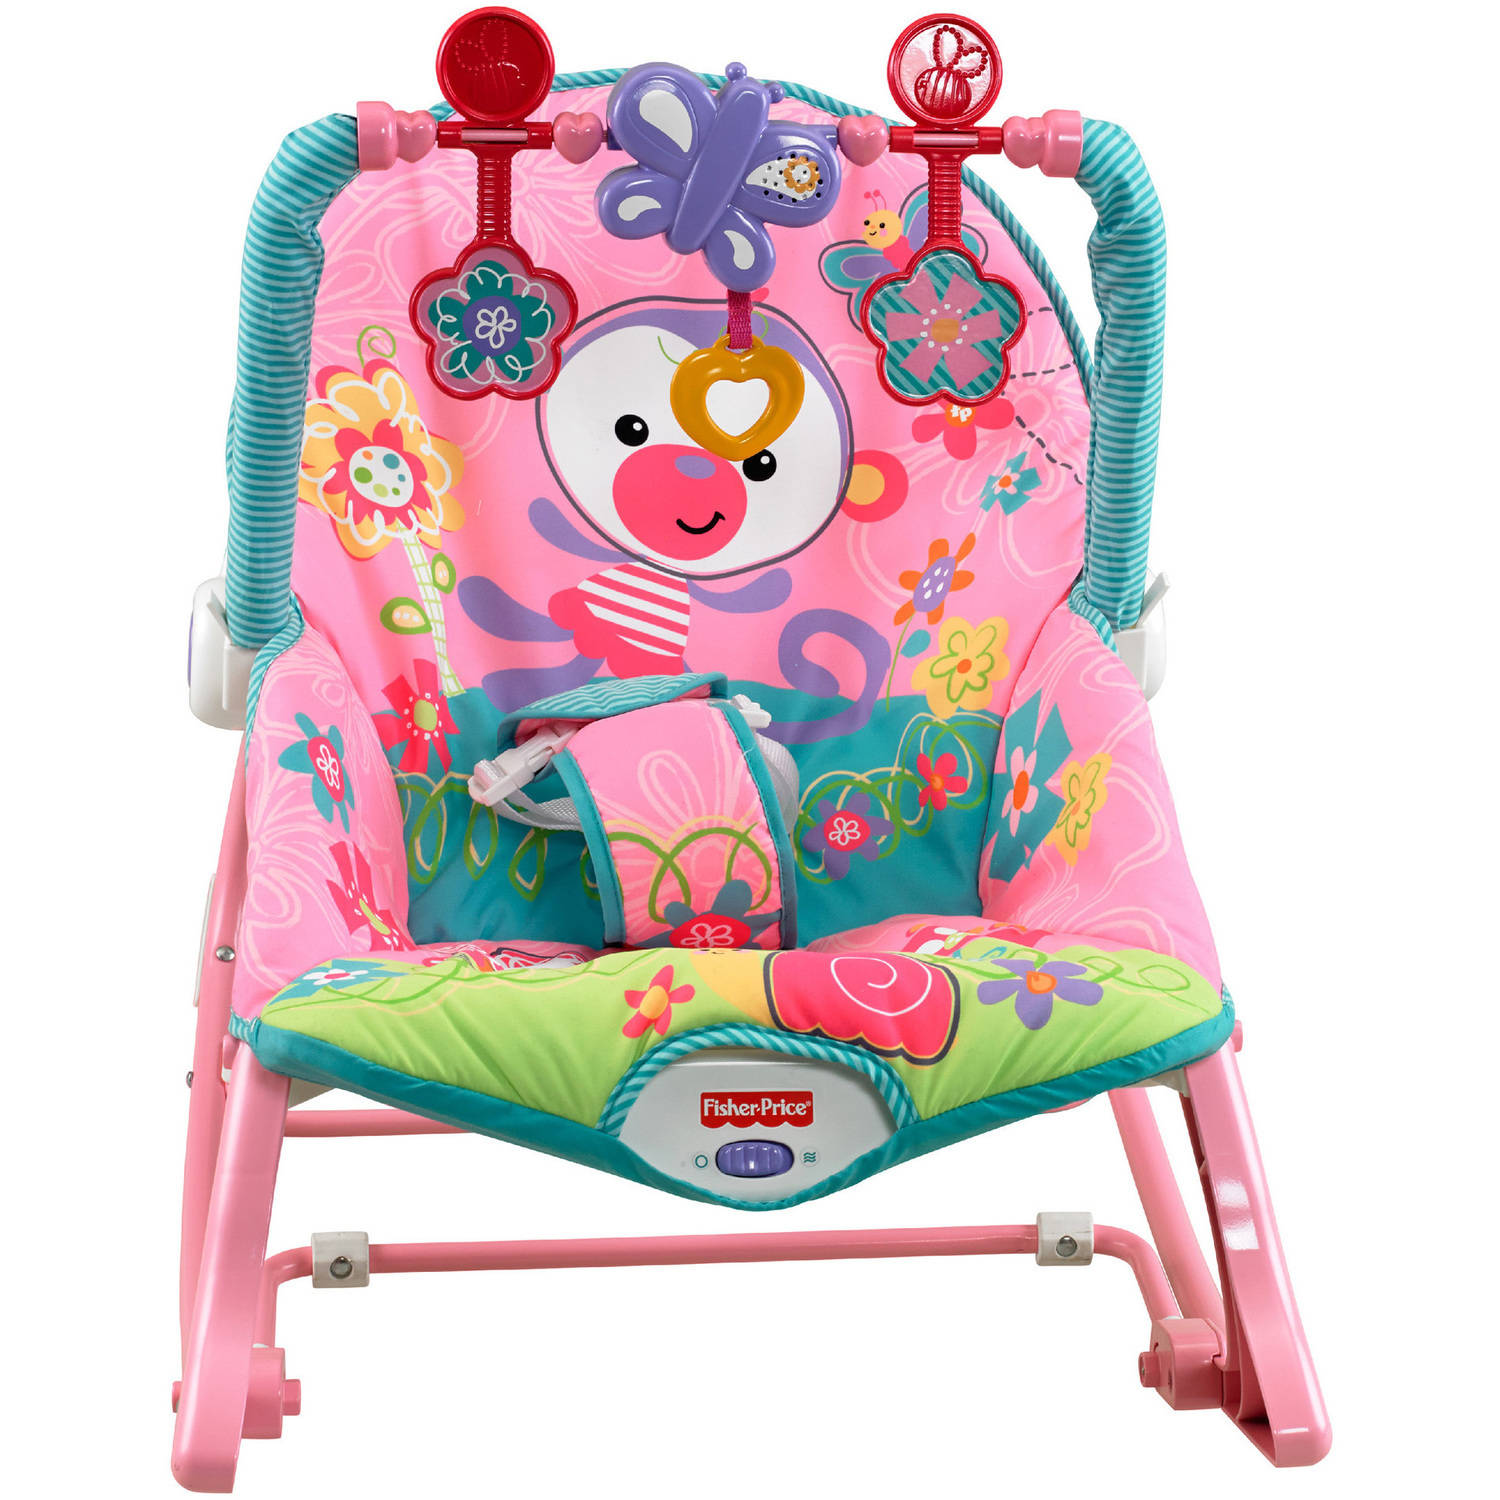 Alami Baby Bouncers Rockers Amp Swings Fisher Price Infant